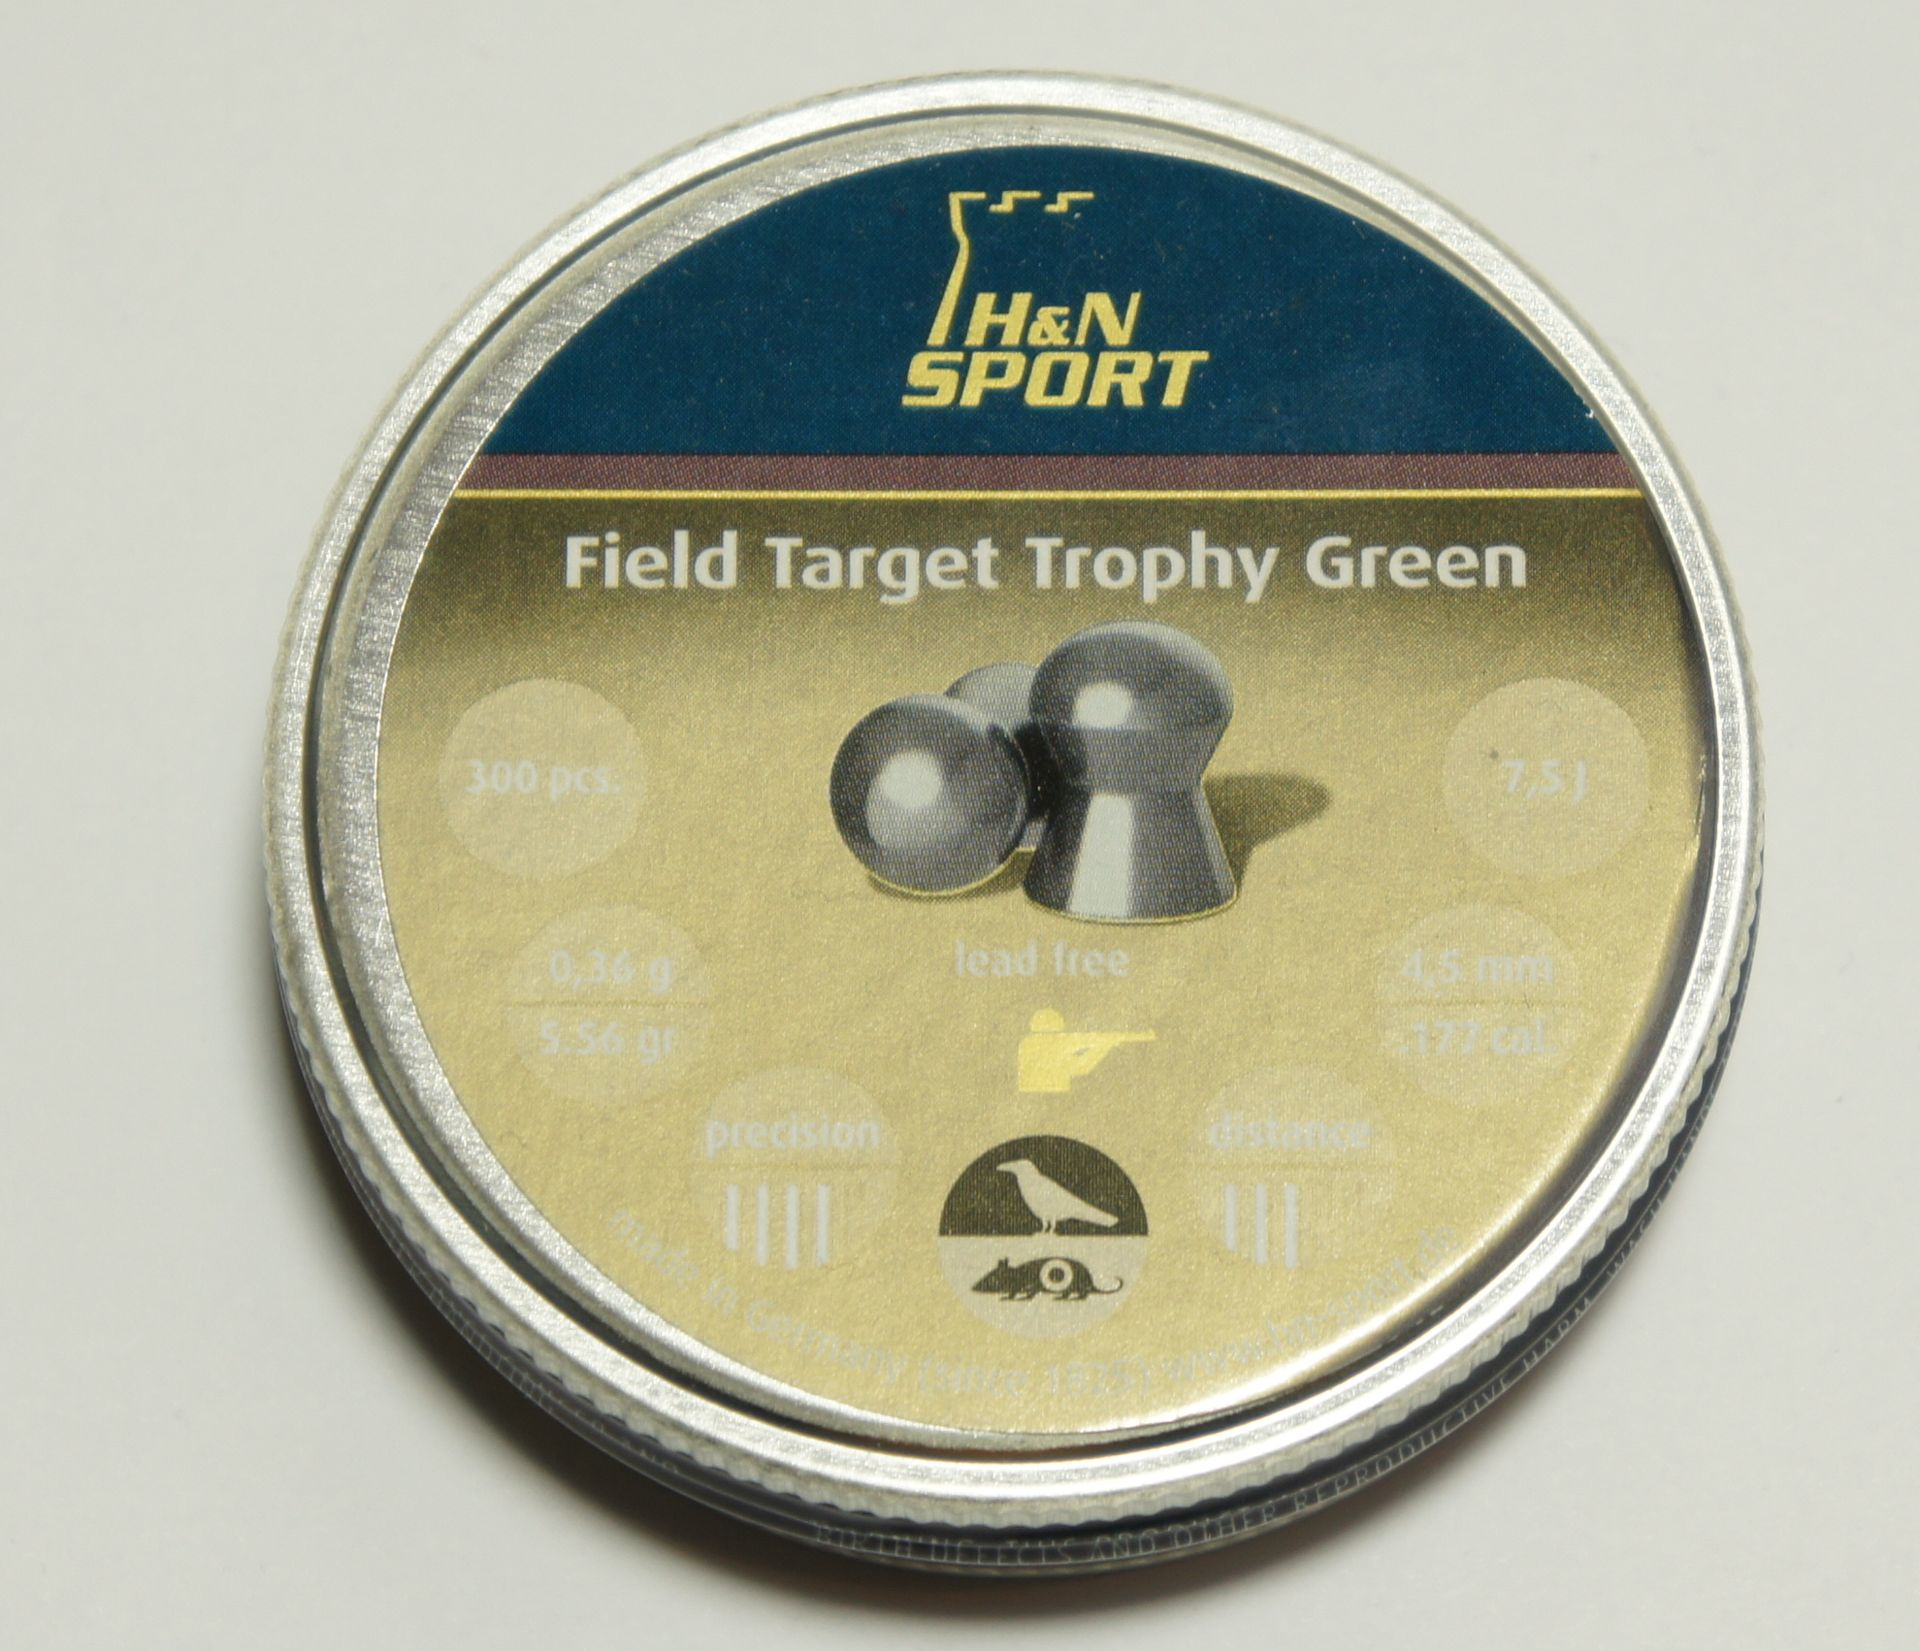 H&N FT Trophy Green